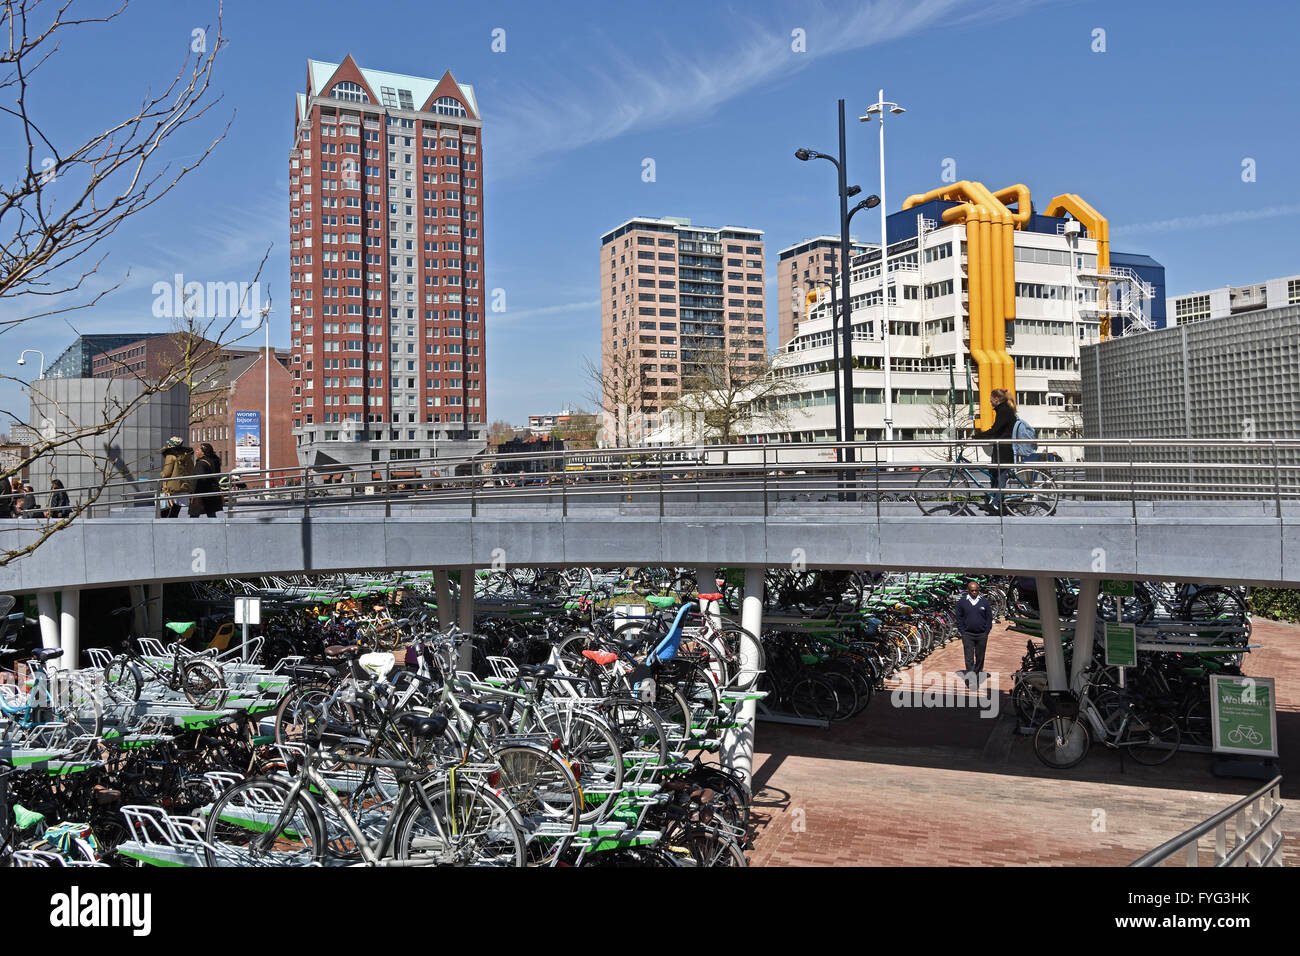 Public bike bicycle storage parking park  city center of Rotterdam Blaak square  Netherlands Central Library  Residence - Stock Image